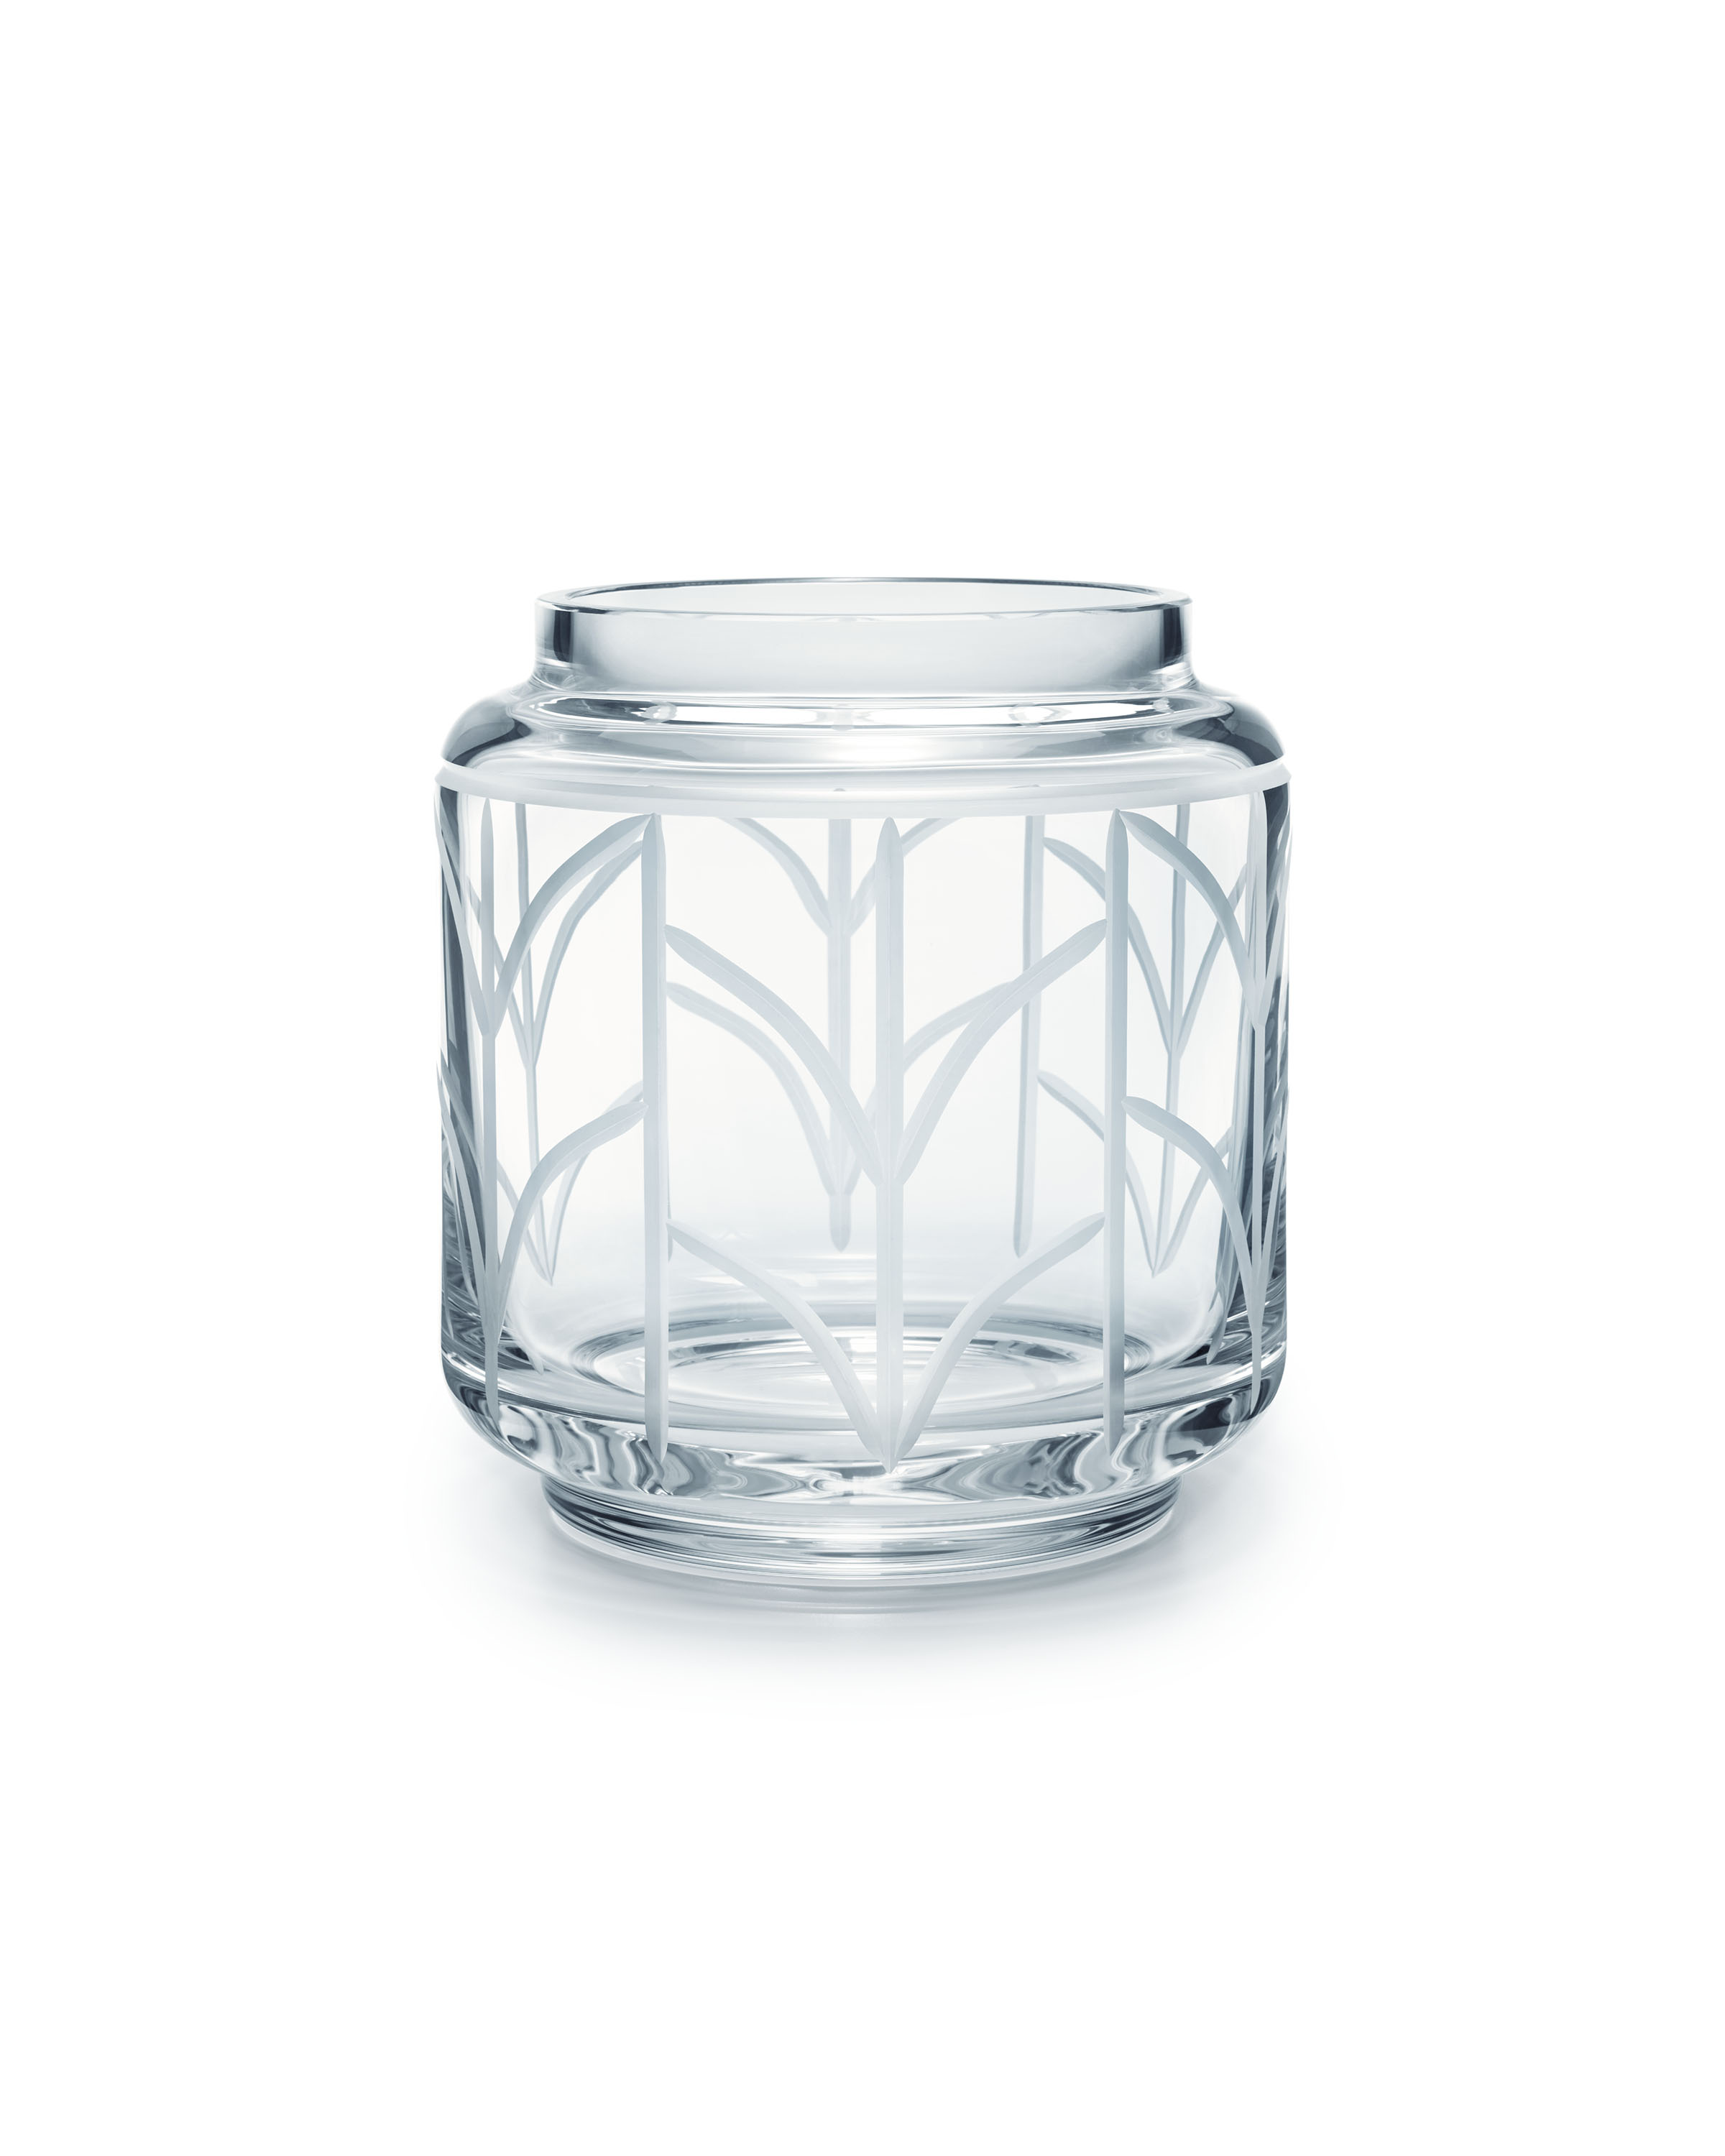 Tiffany & Co. Wheat Leaf baluster vase in crystal glass, small, $175.00. (Photo Credit: Tiffany & Co.)